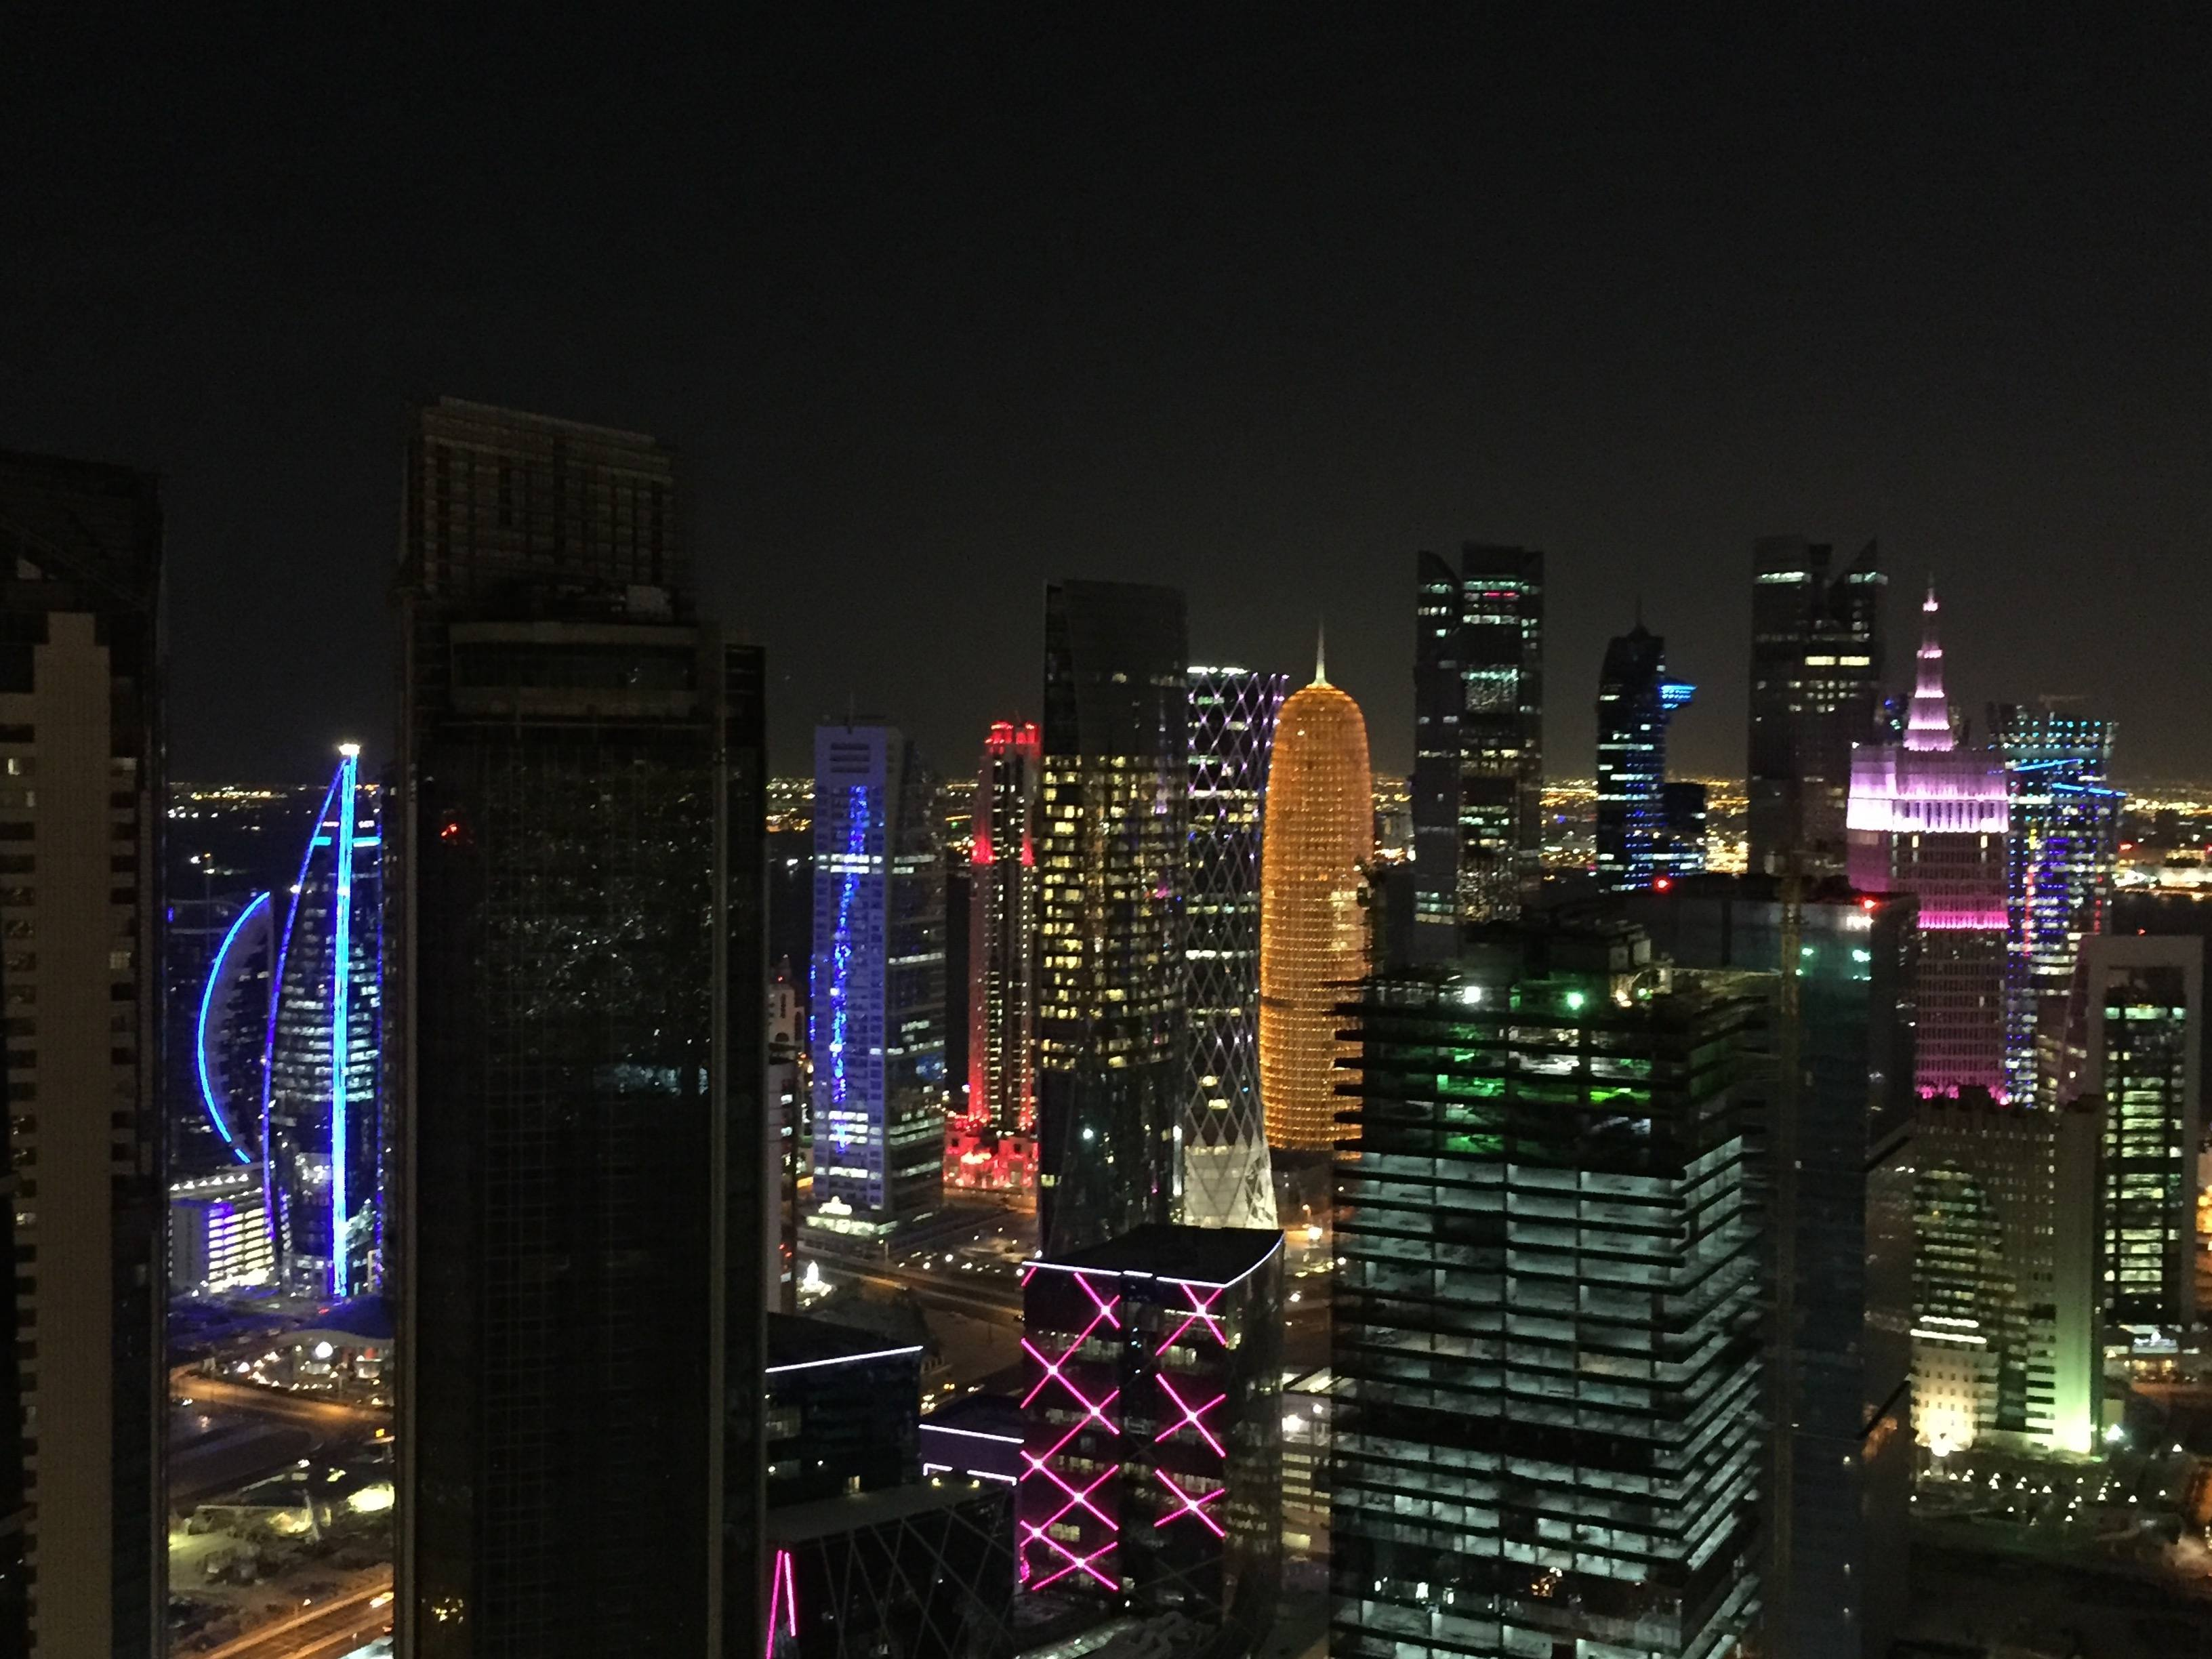 The best view of West Bay from the InterContinental Doha The City